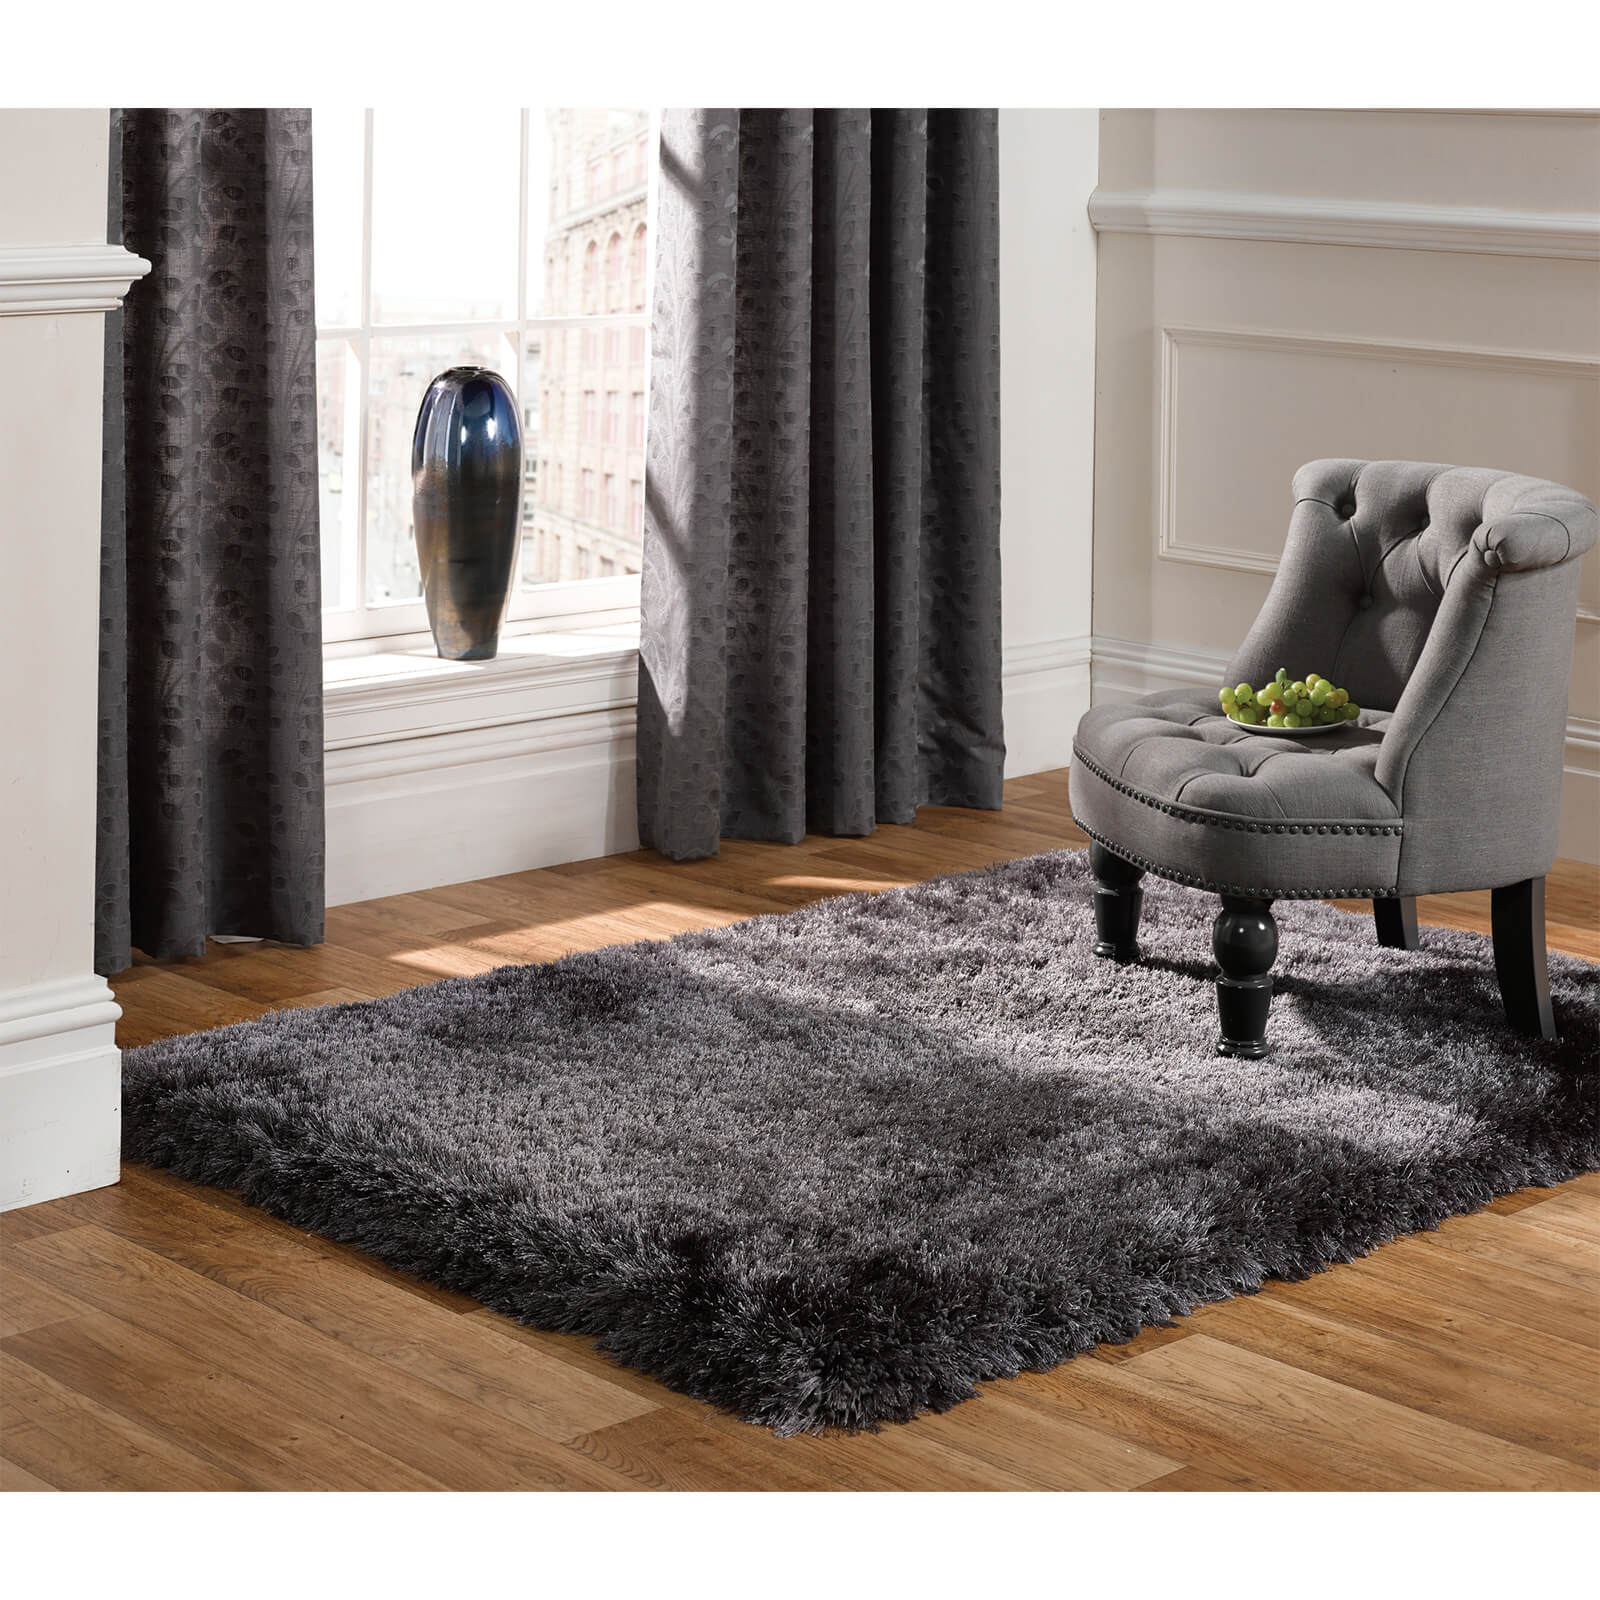 Flair Pearl Rug - Dark Grey